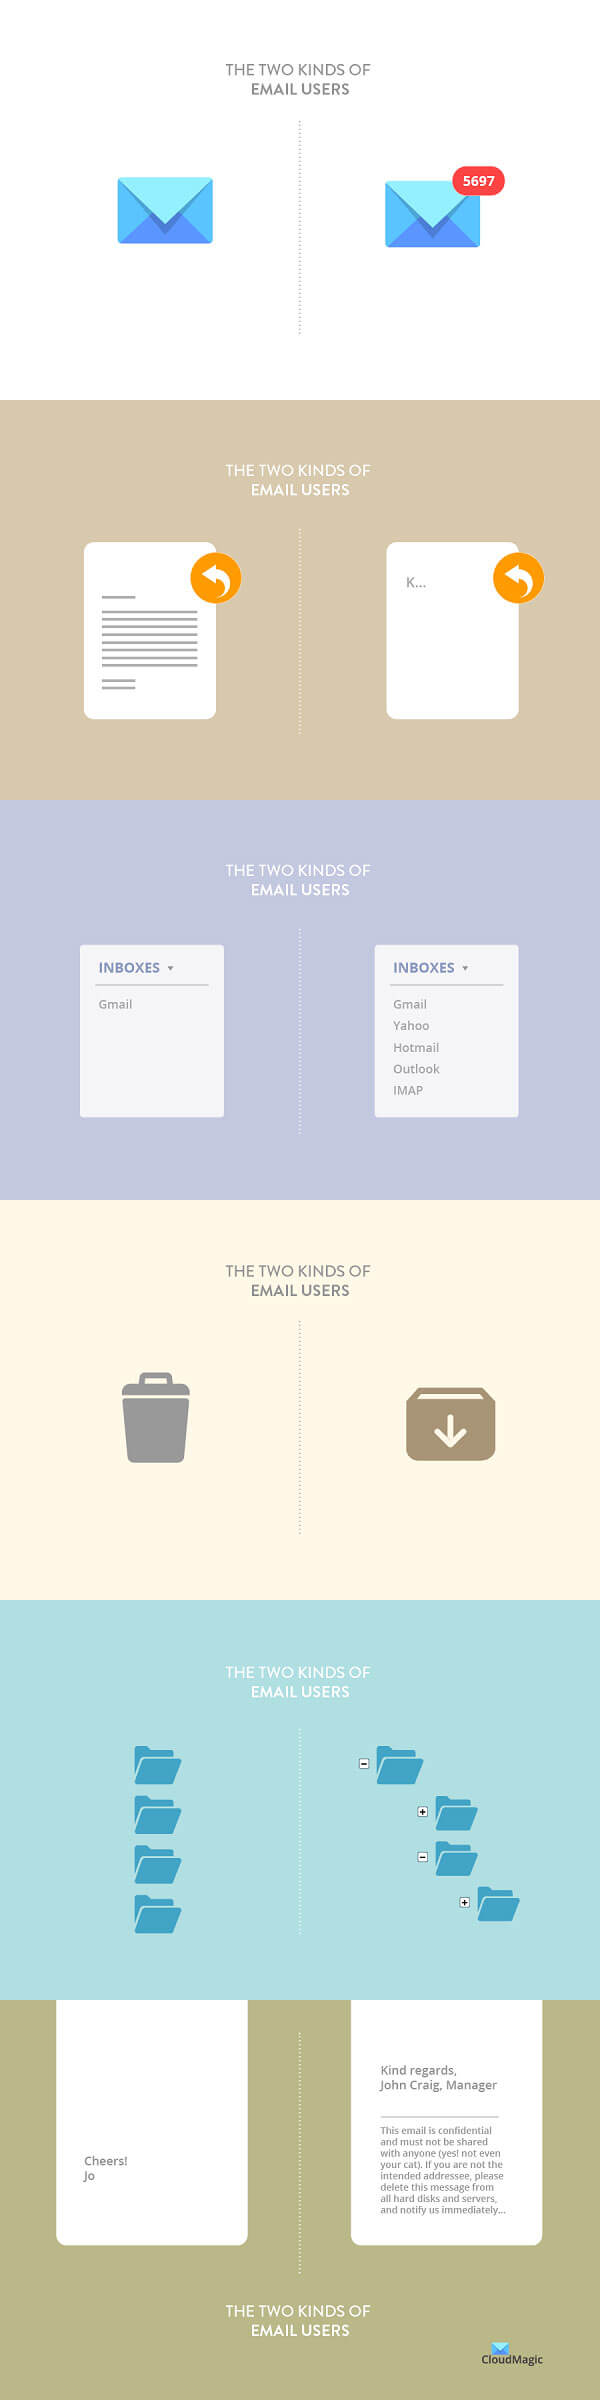 The 2 types of email users: Which are you? | Daniel Swanick